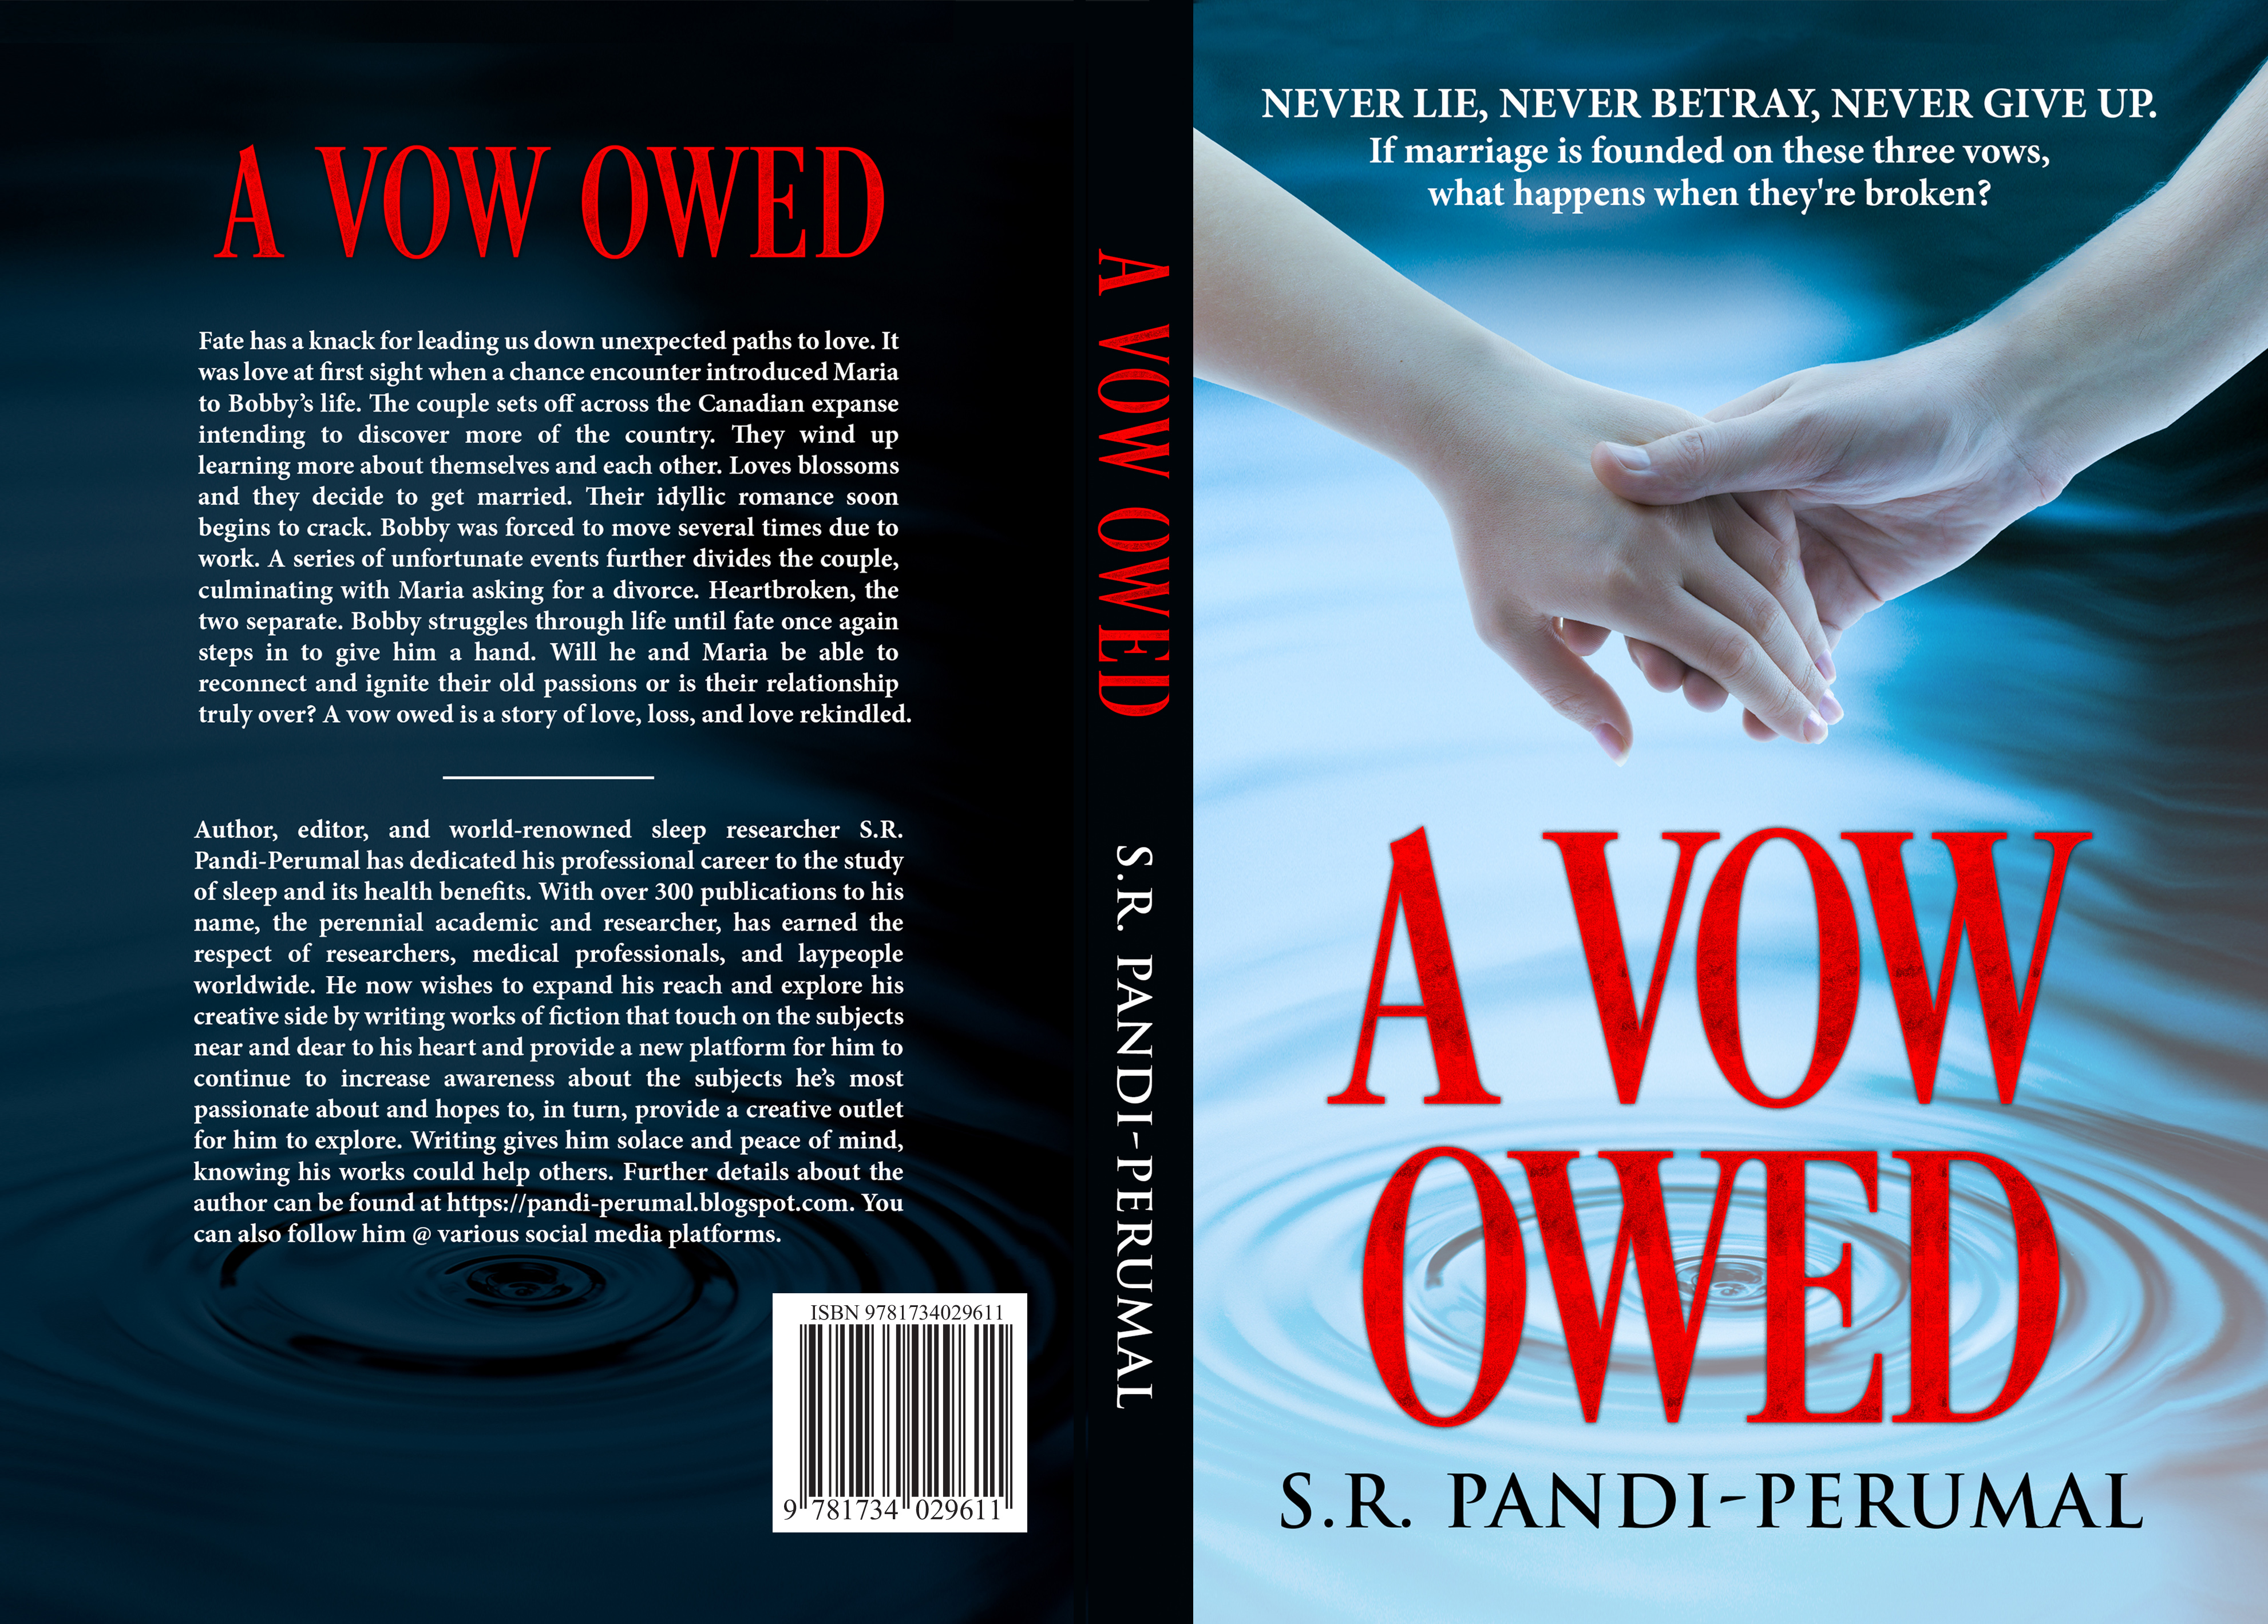 New Romance Novel, A Vow Owed, Takes Readers on an Adventure of Love, Life & Sorrow